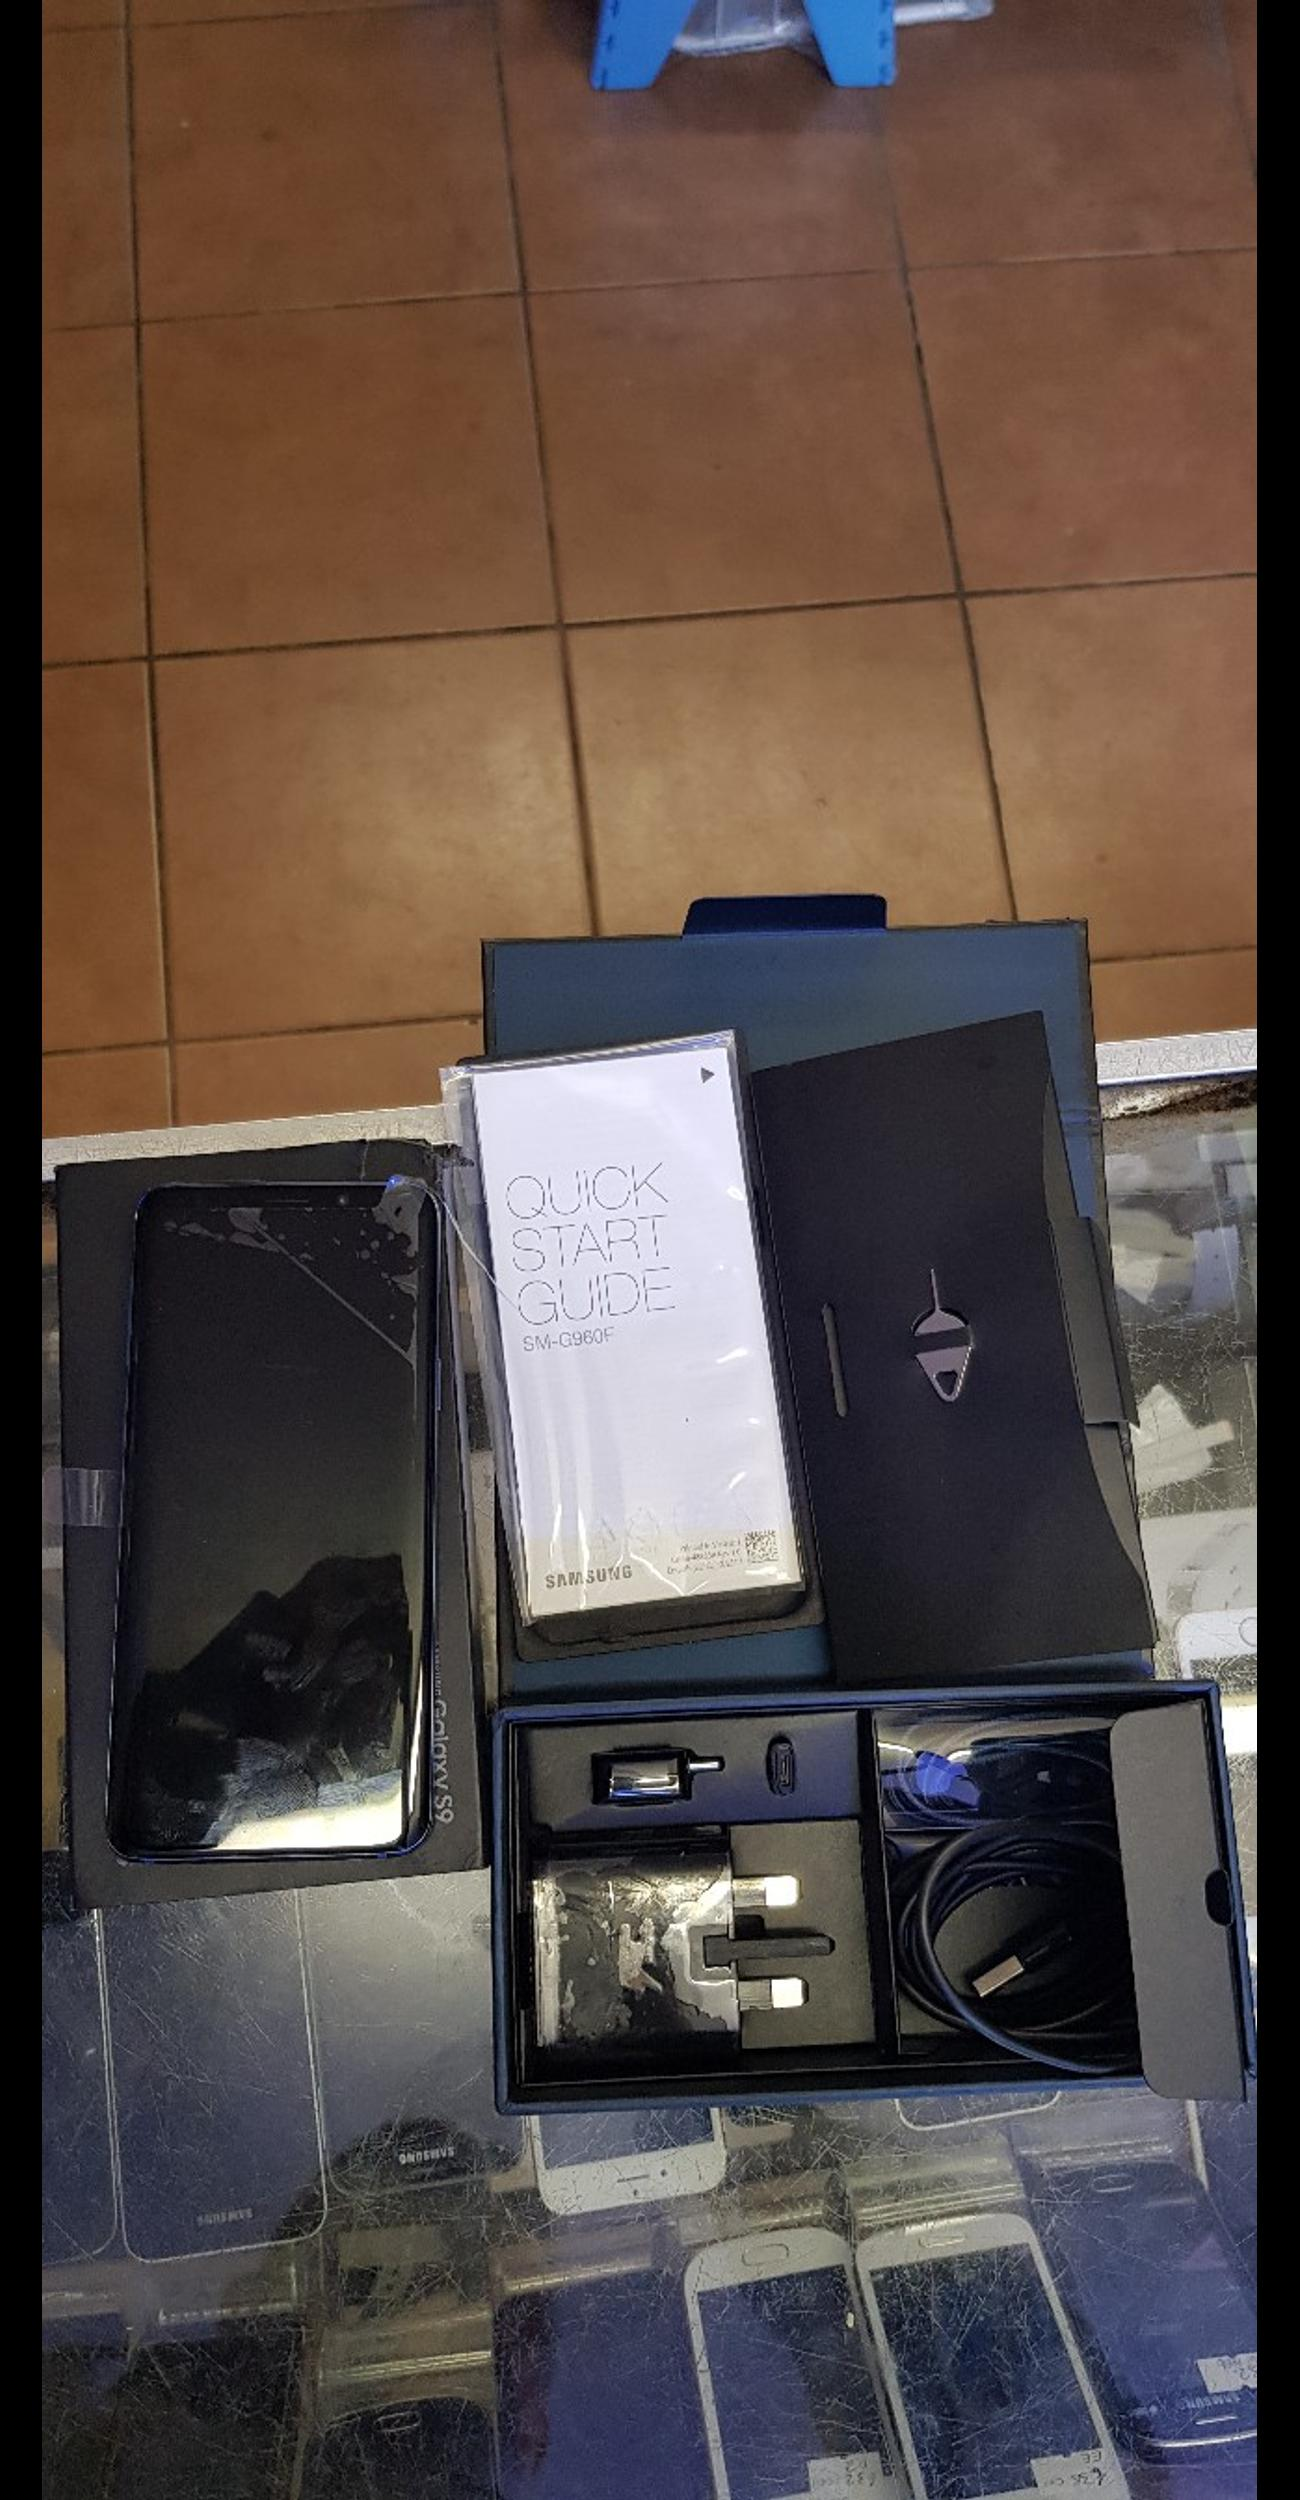 hia I am selling my Samsung galaxy s9 brand new condition with box all accessories on EE network grab a bargain